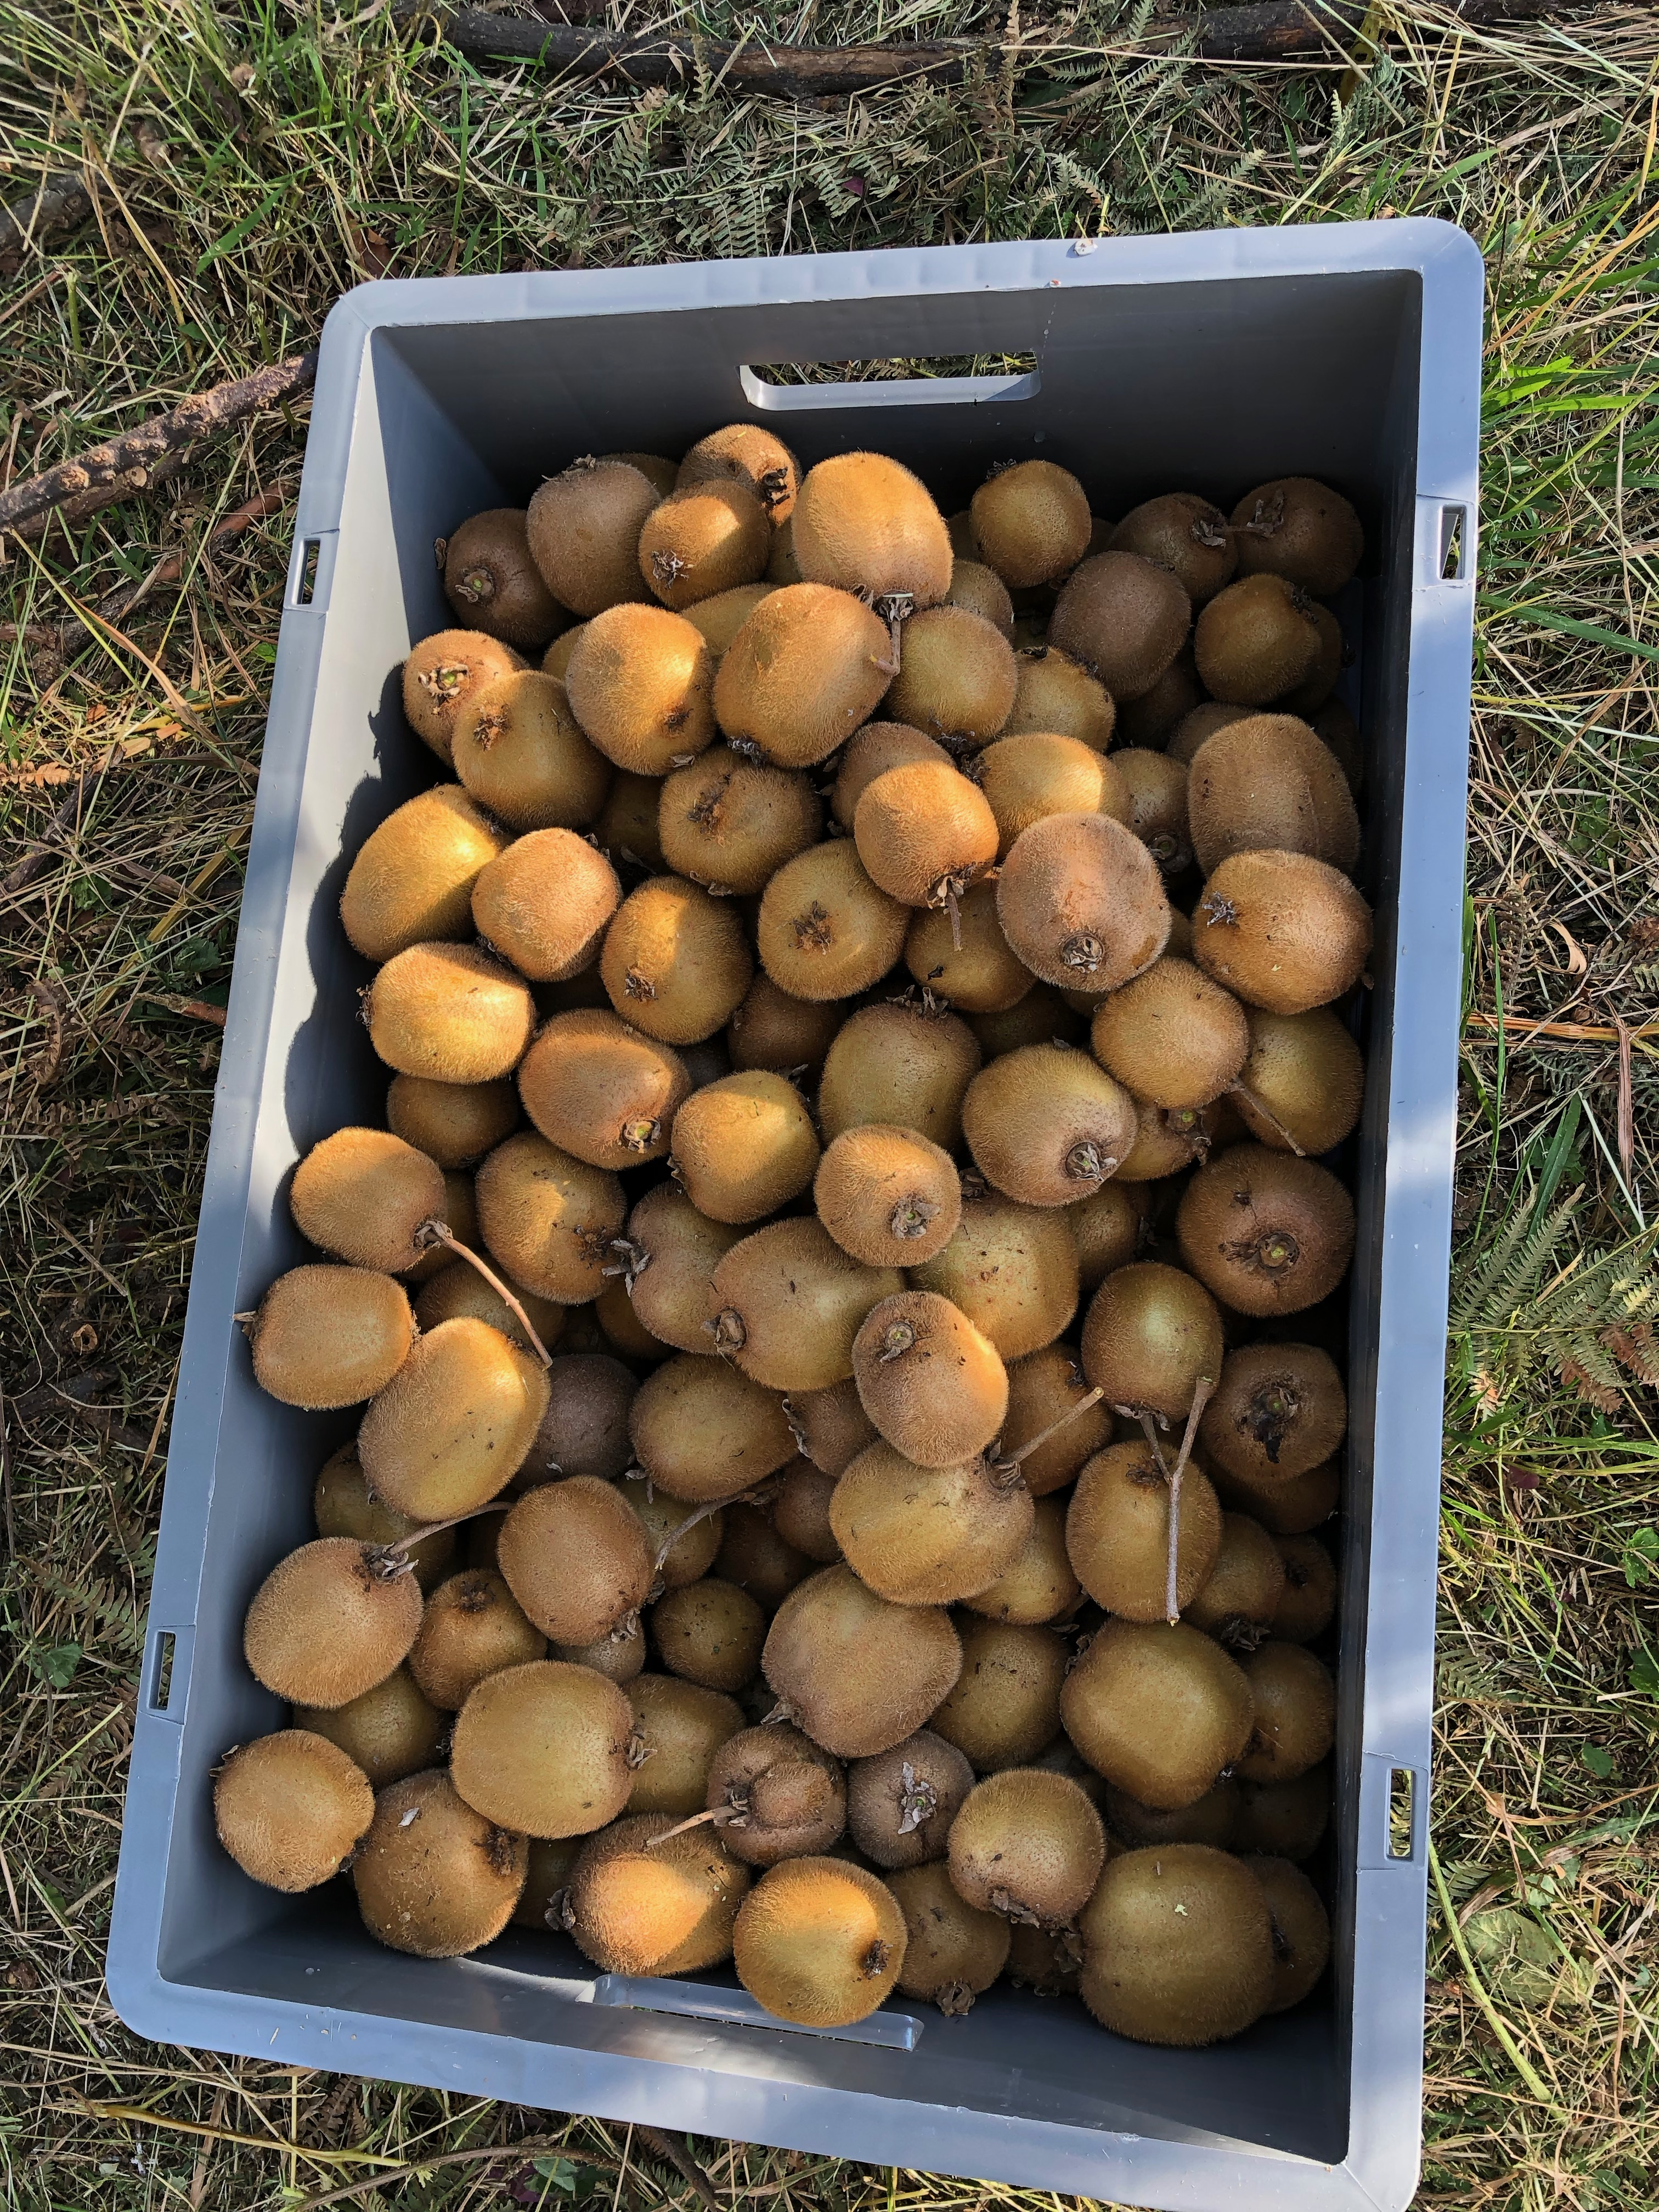 http://www.omu.edu.tr/sites/default/files/files/faculty_of_agricultures_kiwifruits_are_on_sale/omu_kivi_2018_2.jpeg